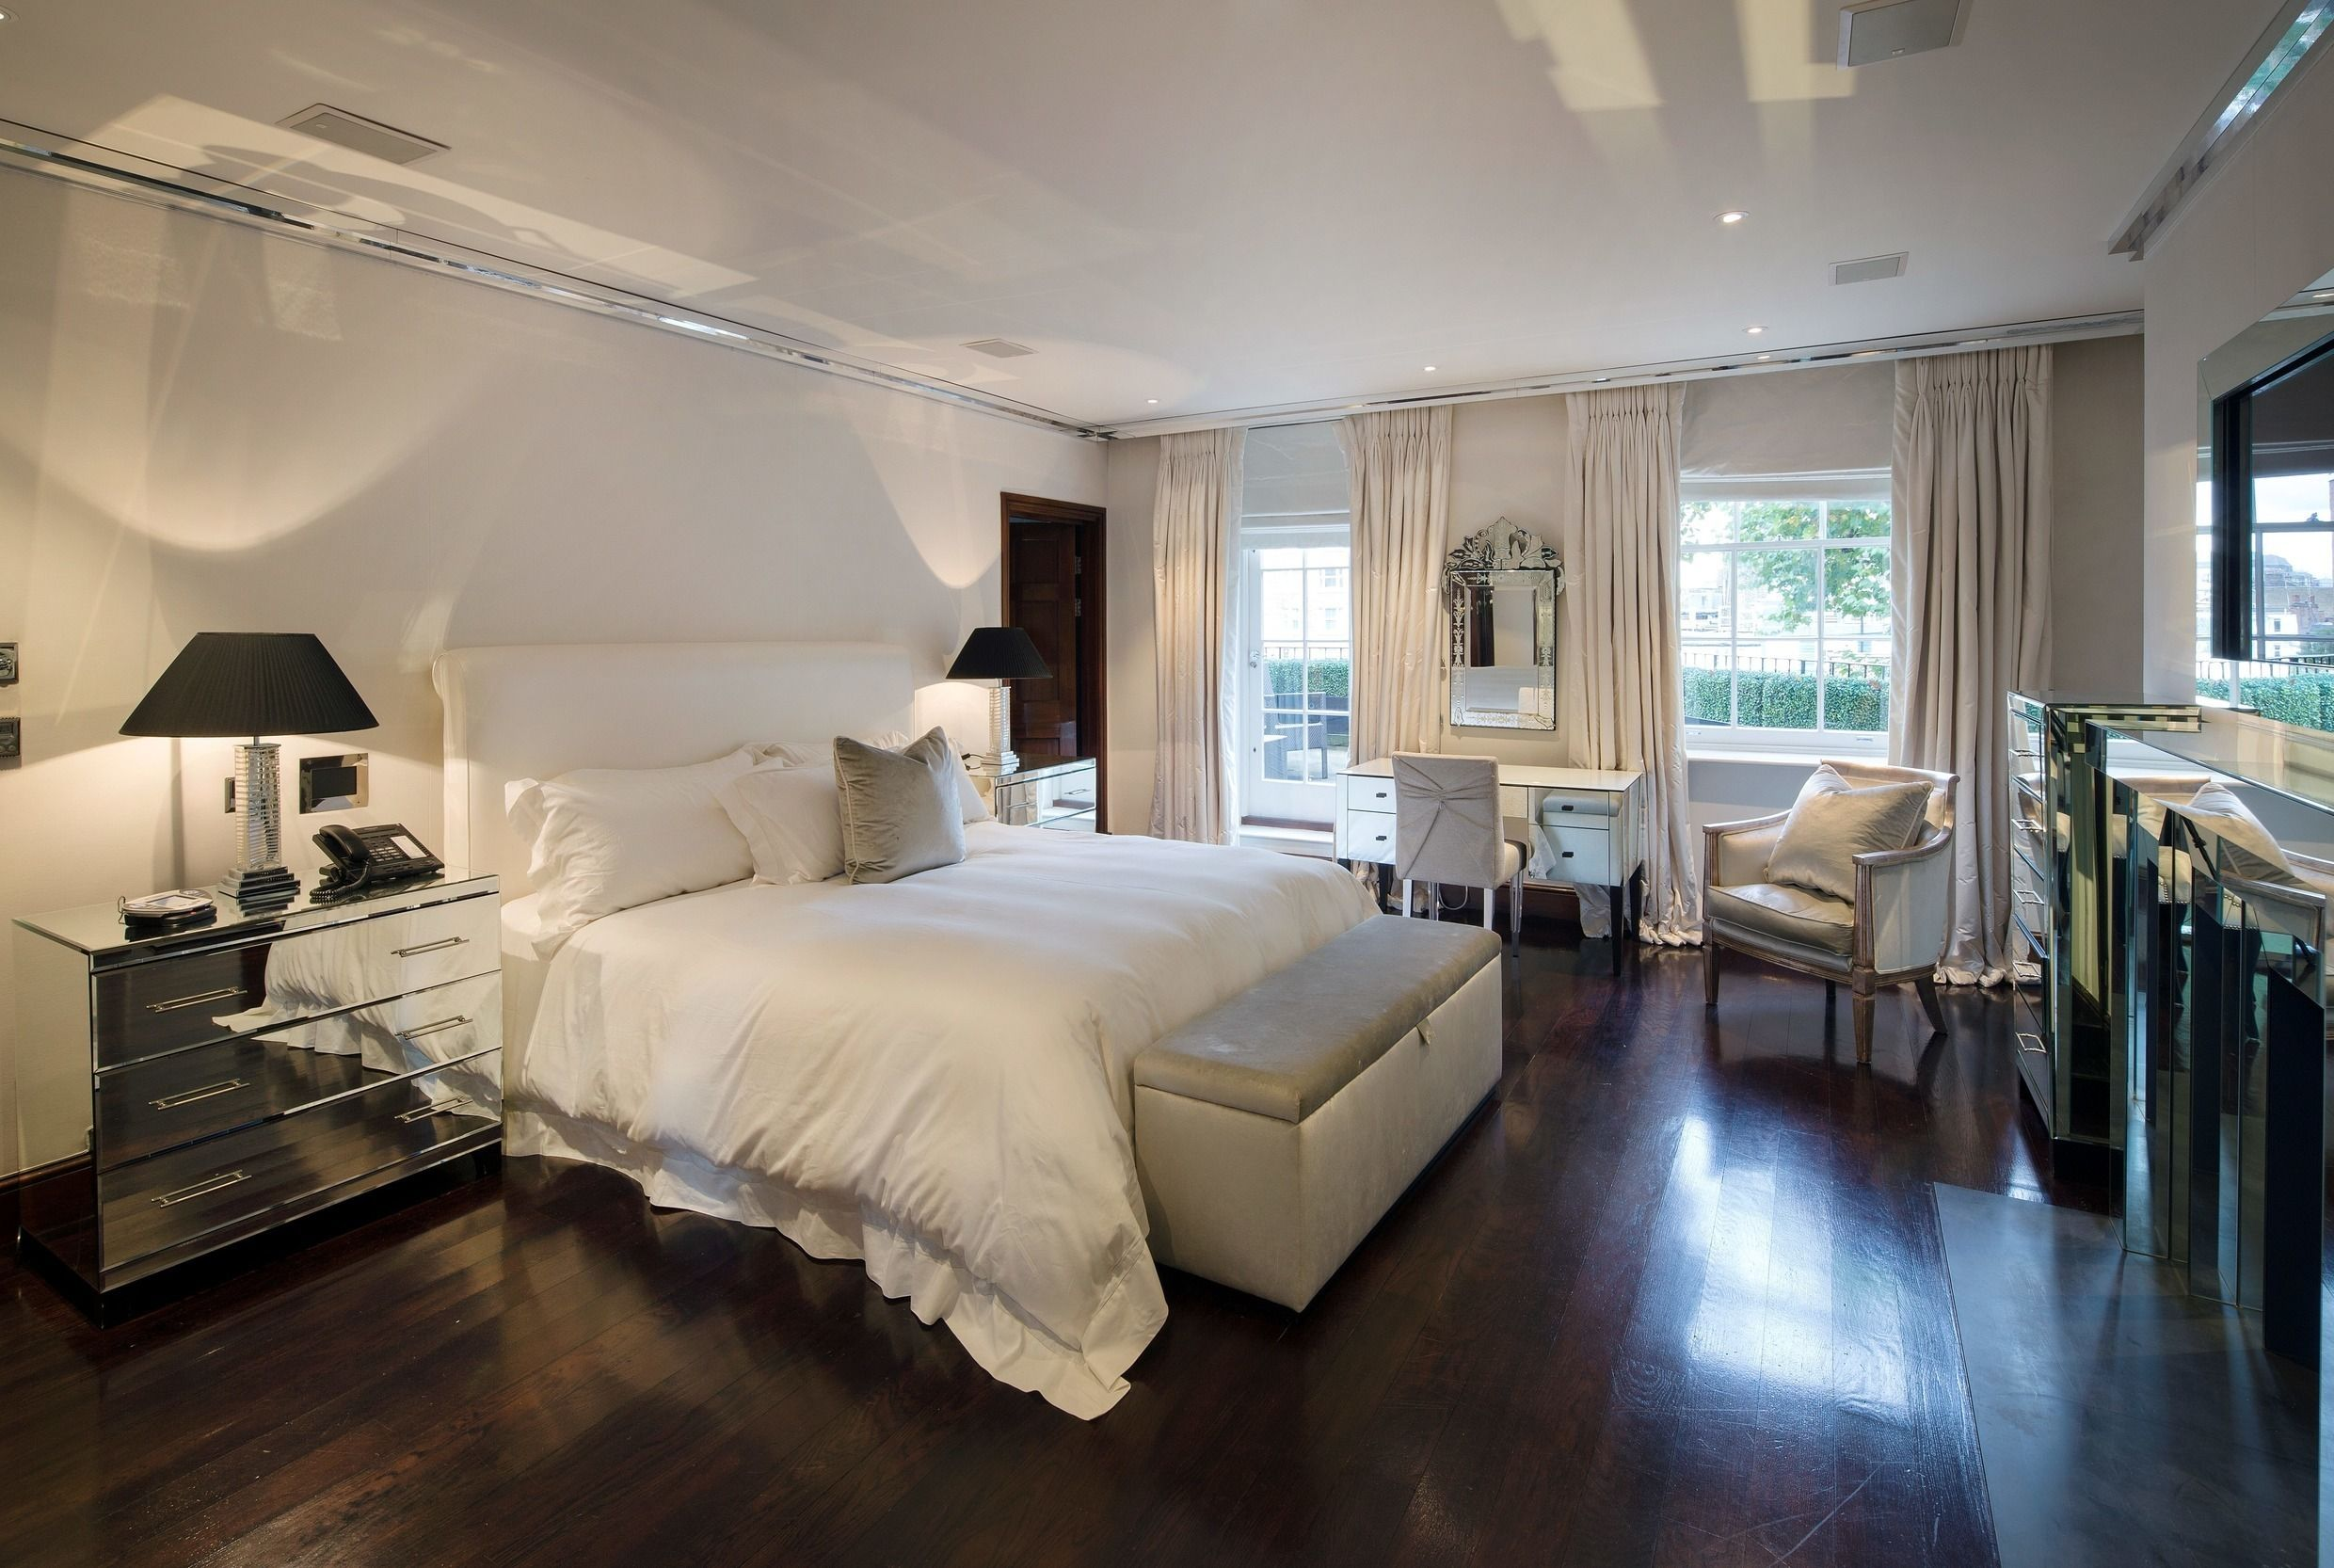 Bedrooms. breathtaking decor and placement   Bedroom Decor   Pinterest